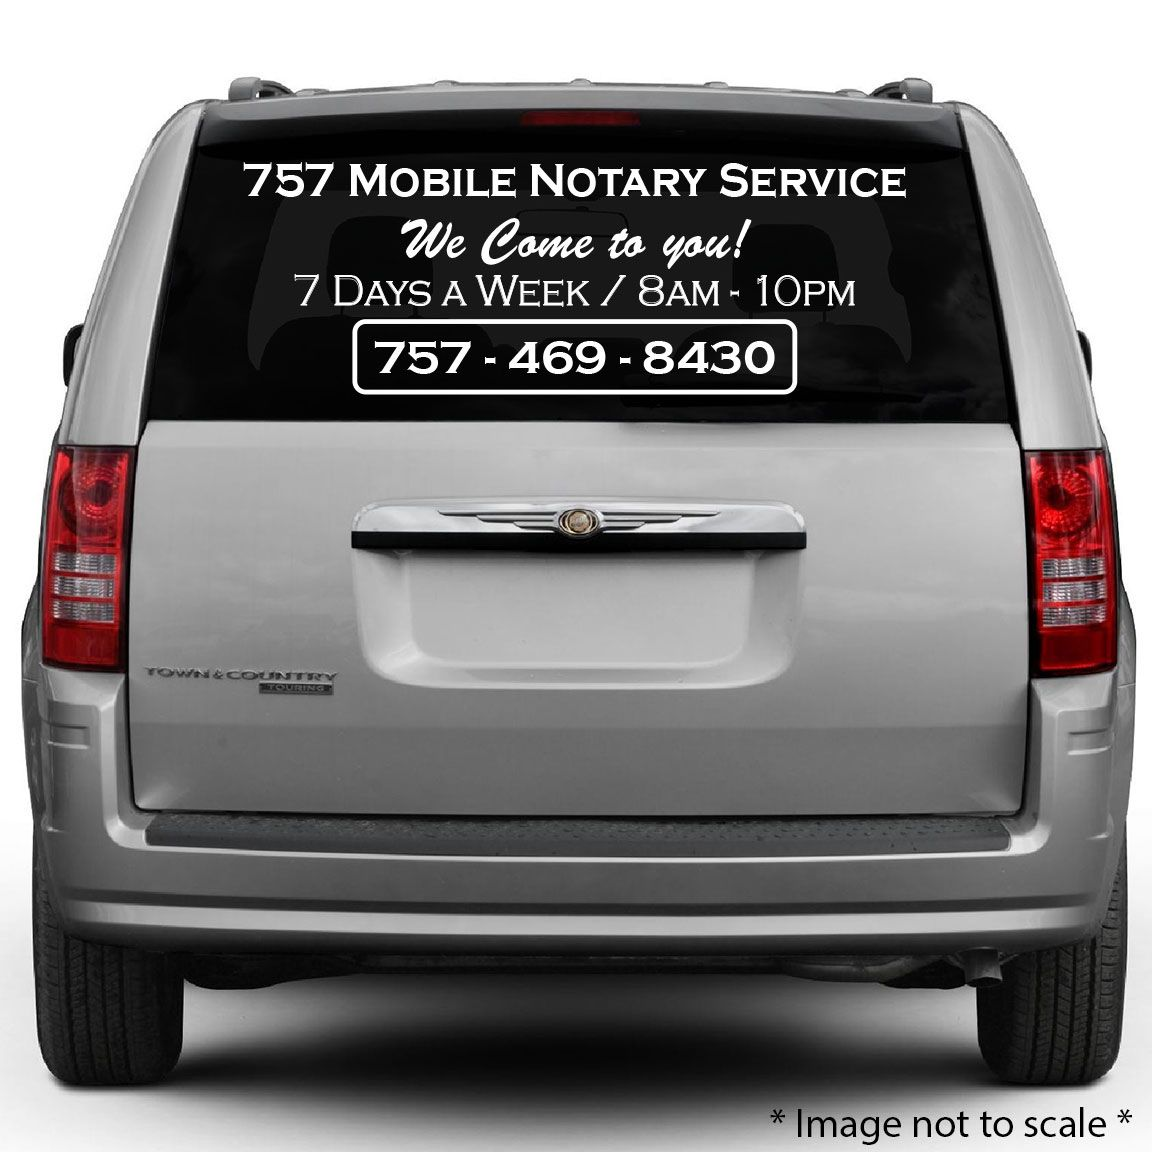 757 mobile notary service 757 469 8430 https stickertitans